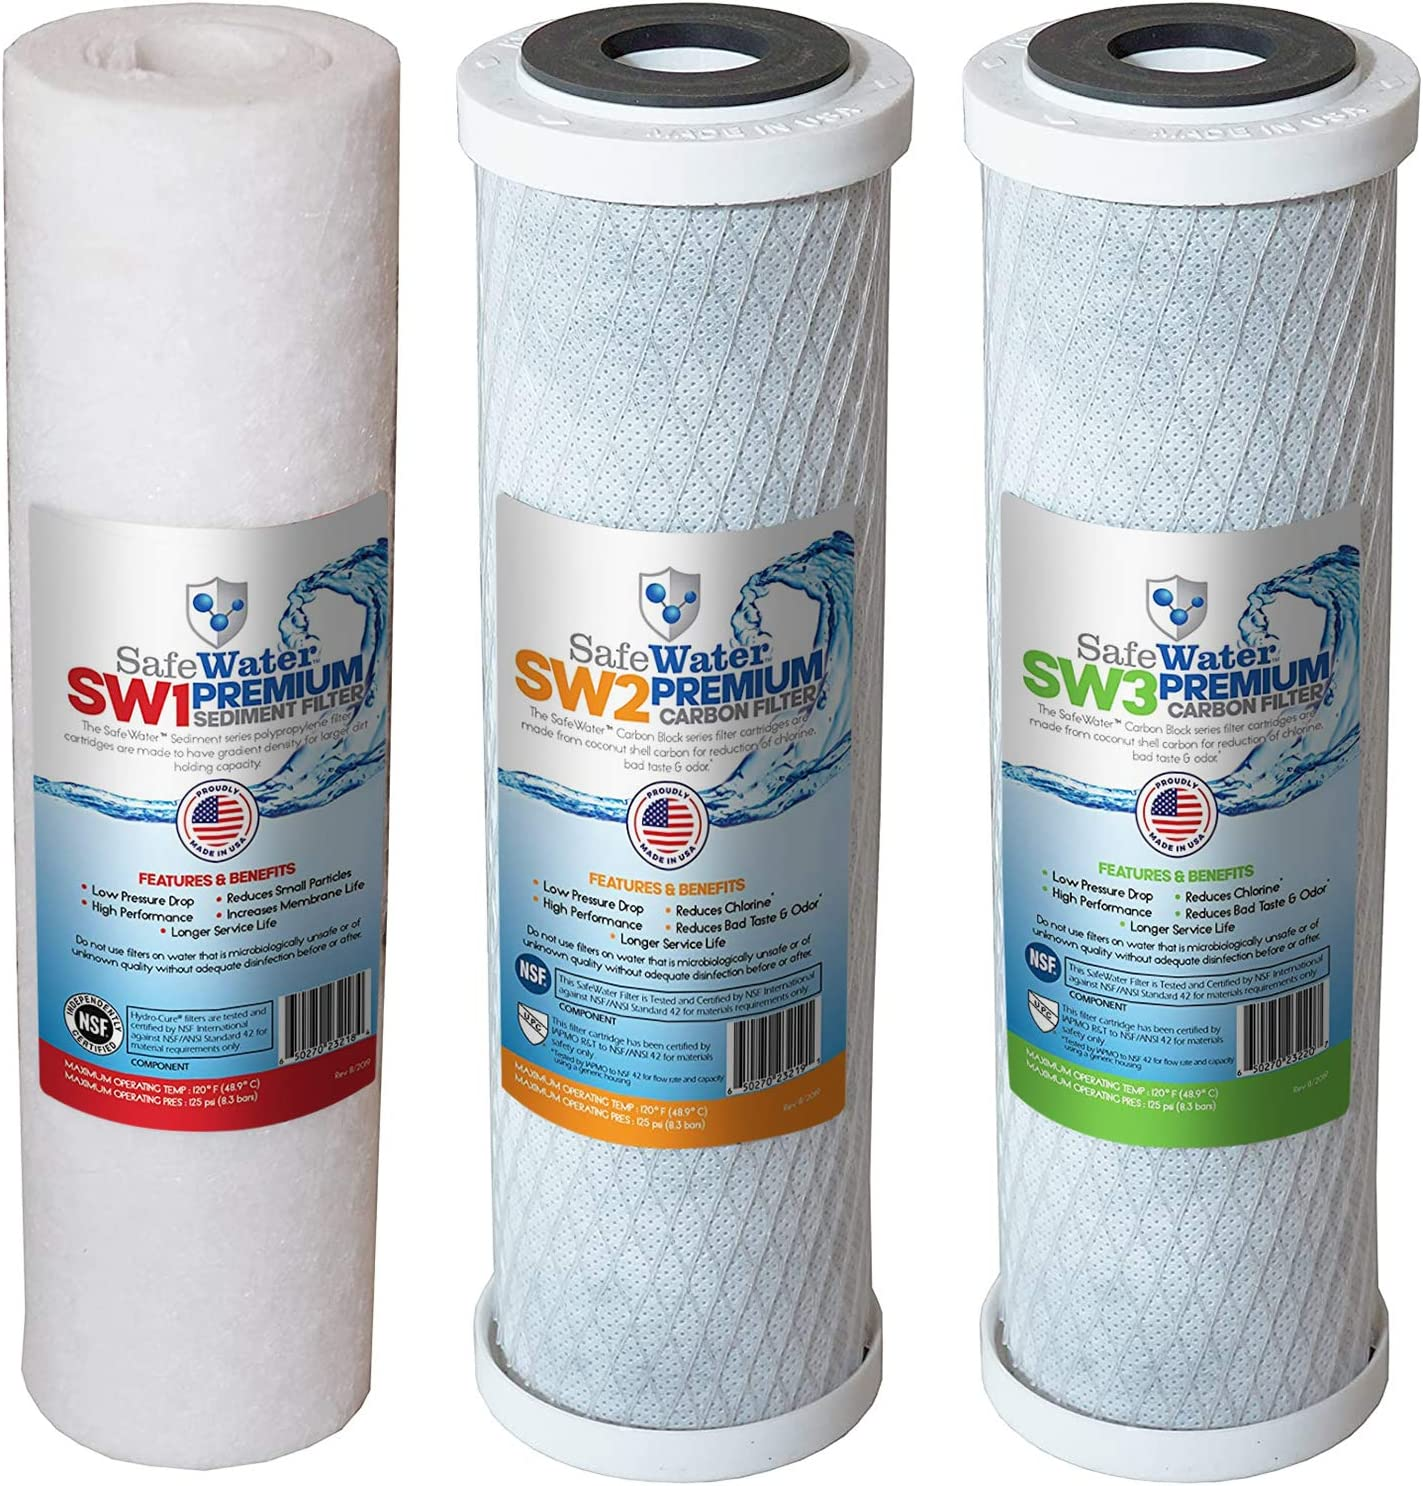 SafeWater Filter-Set USA MADE Reverse Osmosis RO Filter Replacement Set for All Standard and ULTIMATE 3 Stage Systems - Double Capacity - EASY TO INSTALL for GREAT TASTING WATER - NSF Certified